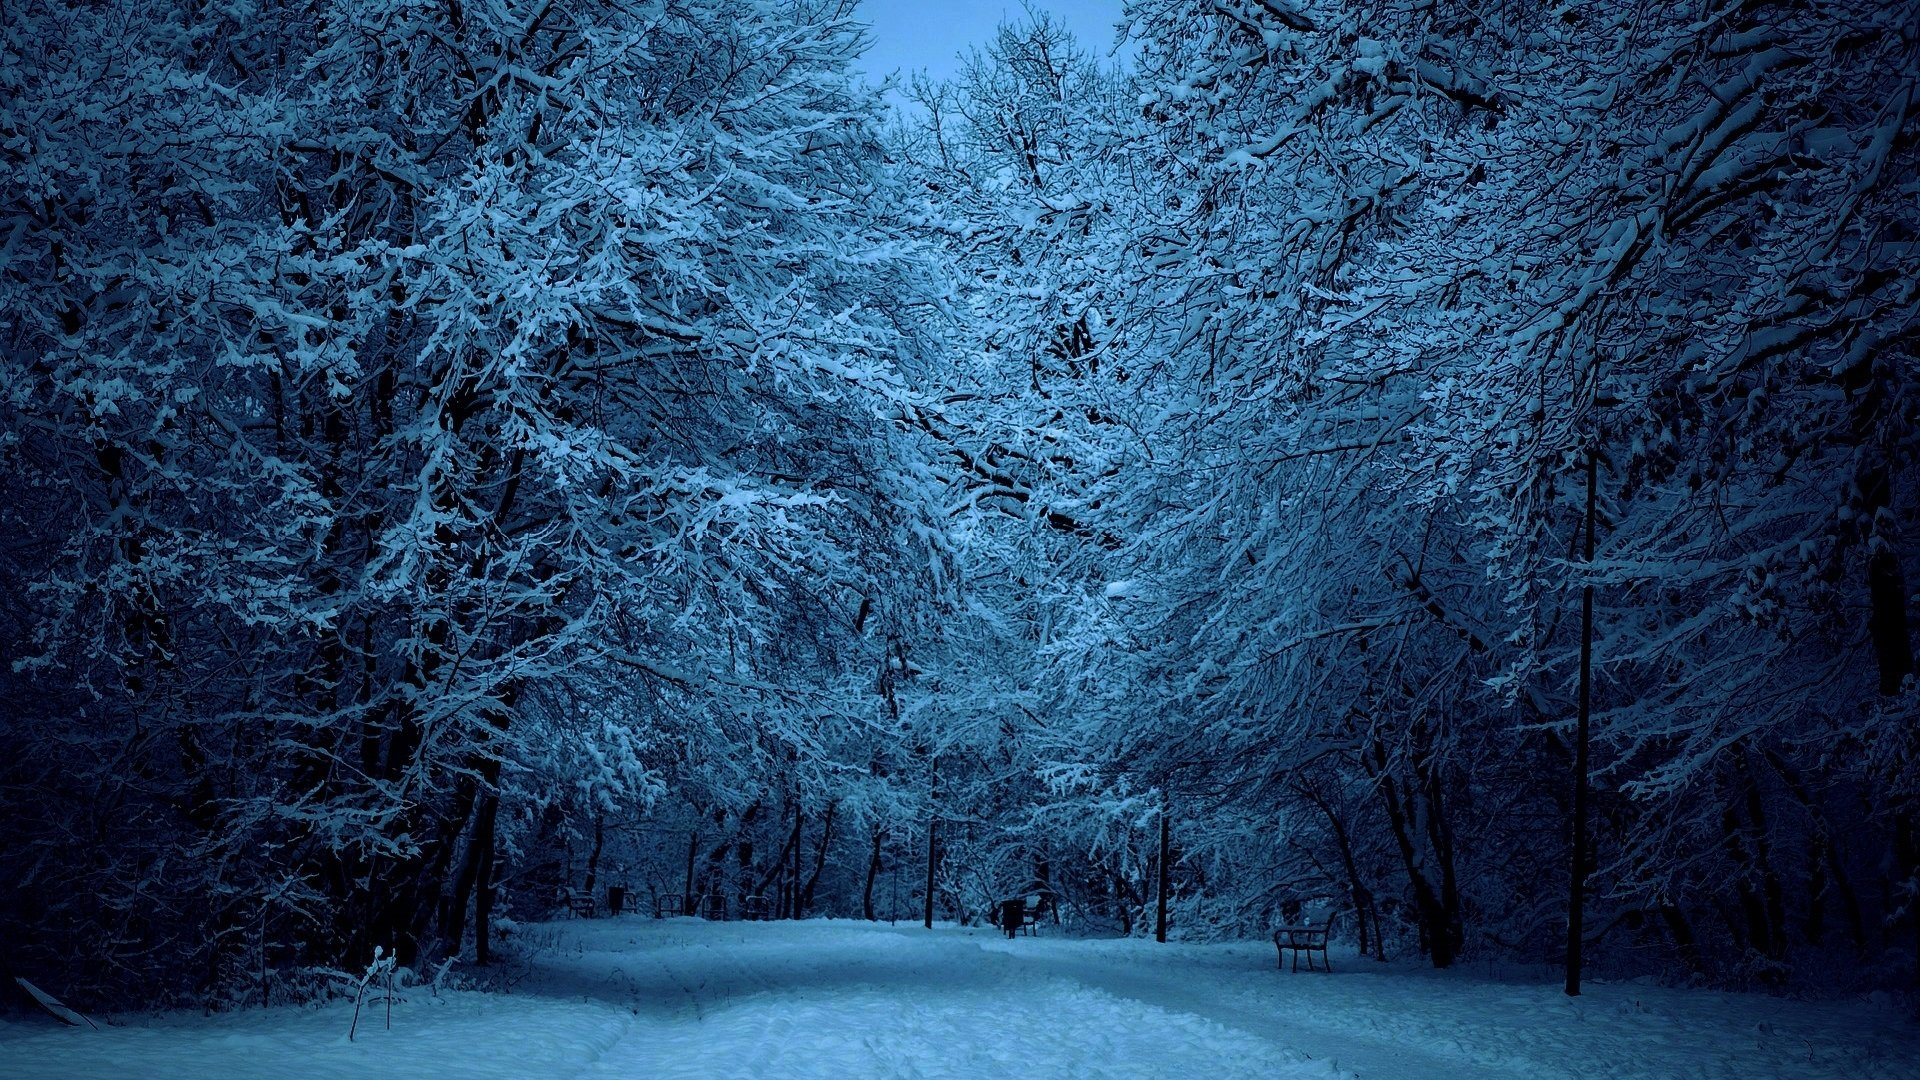 Falling Skies Wallpaper 1920x1080 Snow Covered Winter Street At Dusk Full Hd Wallpaper And